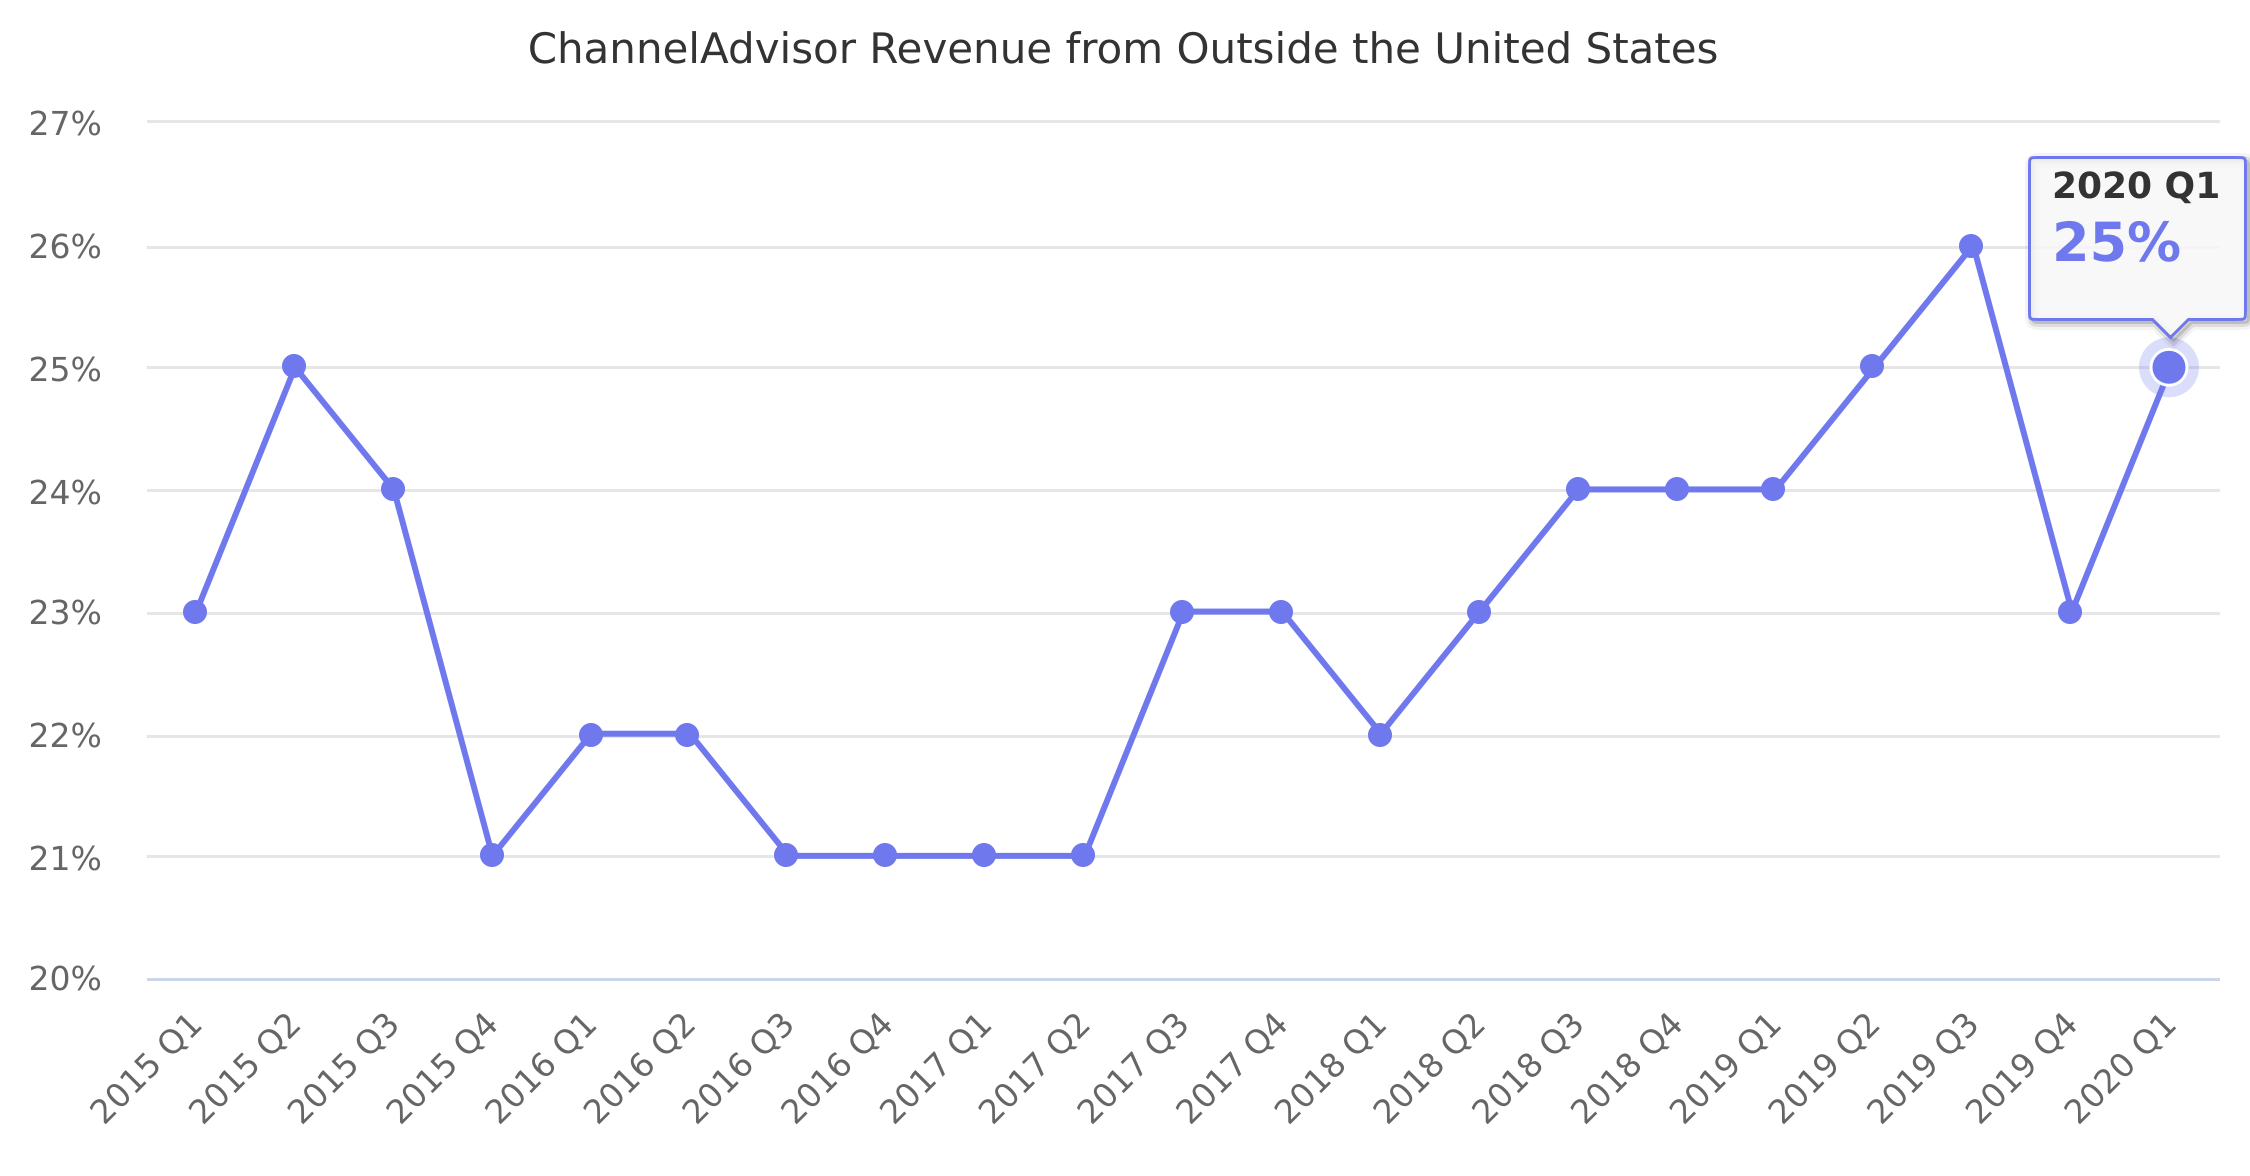 ChannelAdvisor Revenue from Outside the United States 2015-2018